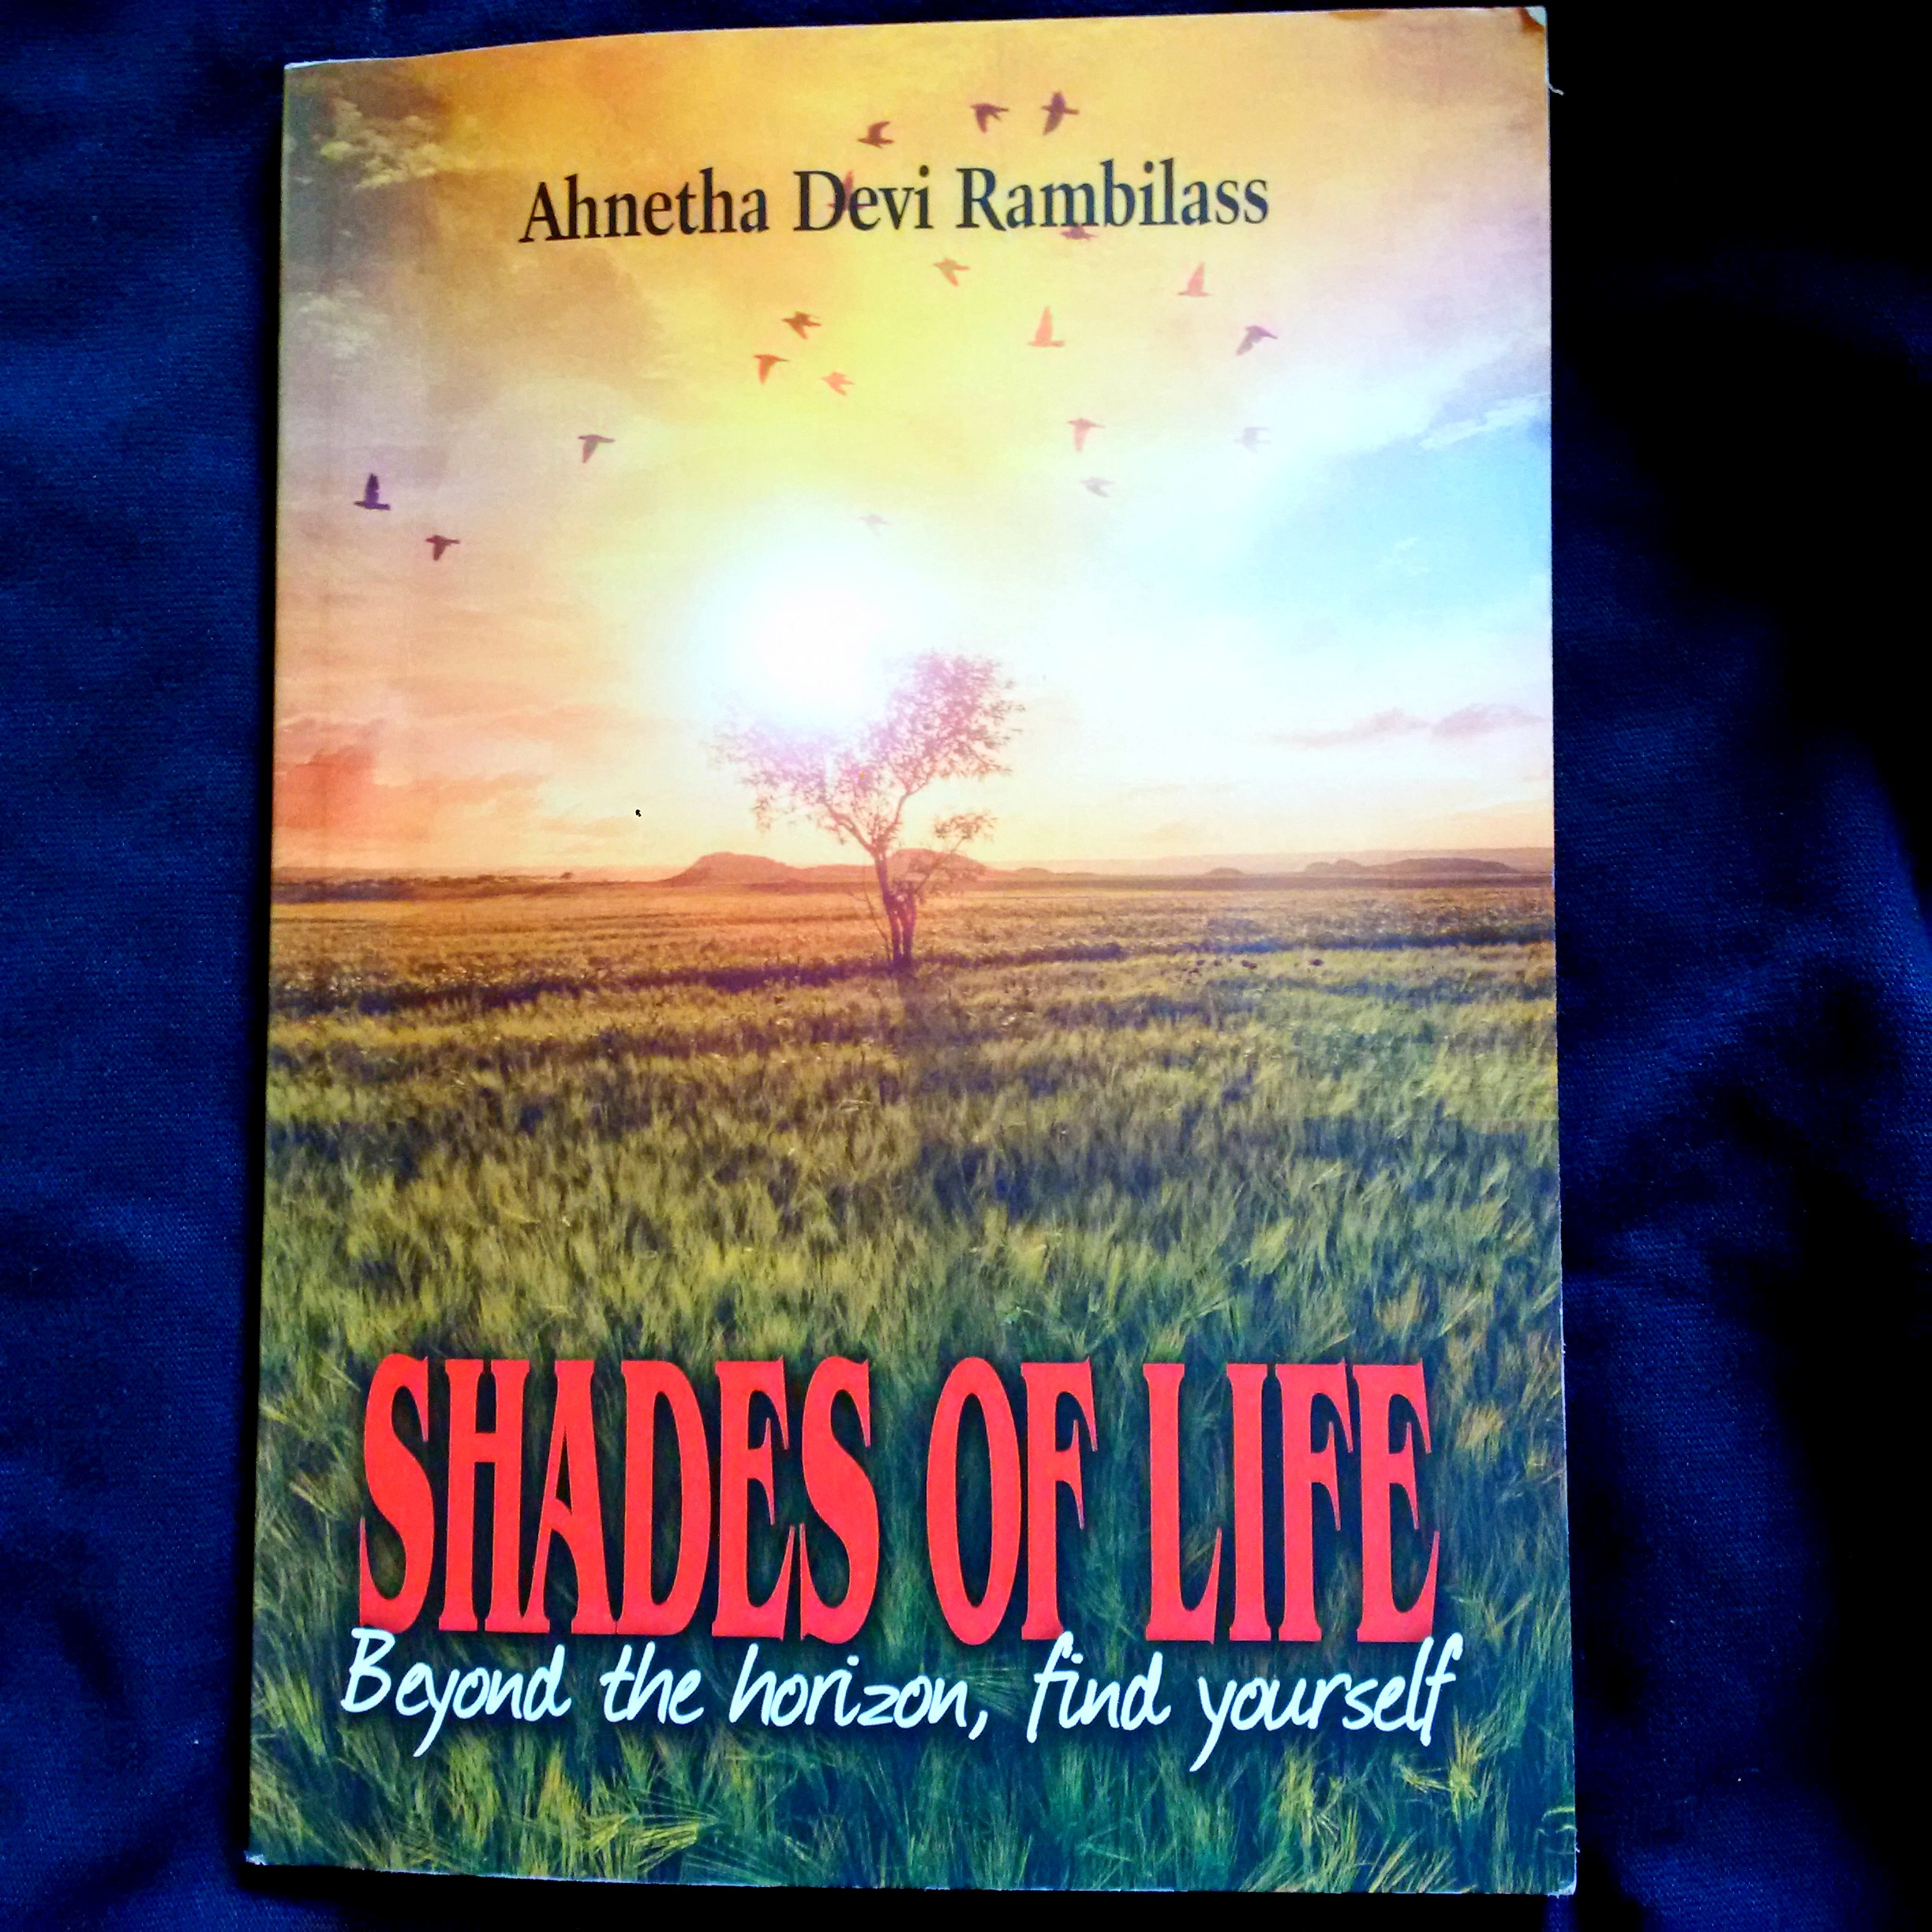 Shades Of Life | An Inspirational Read By Ahnetha Devi Rambilass